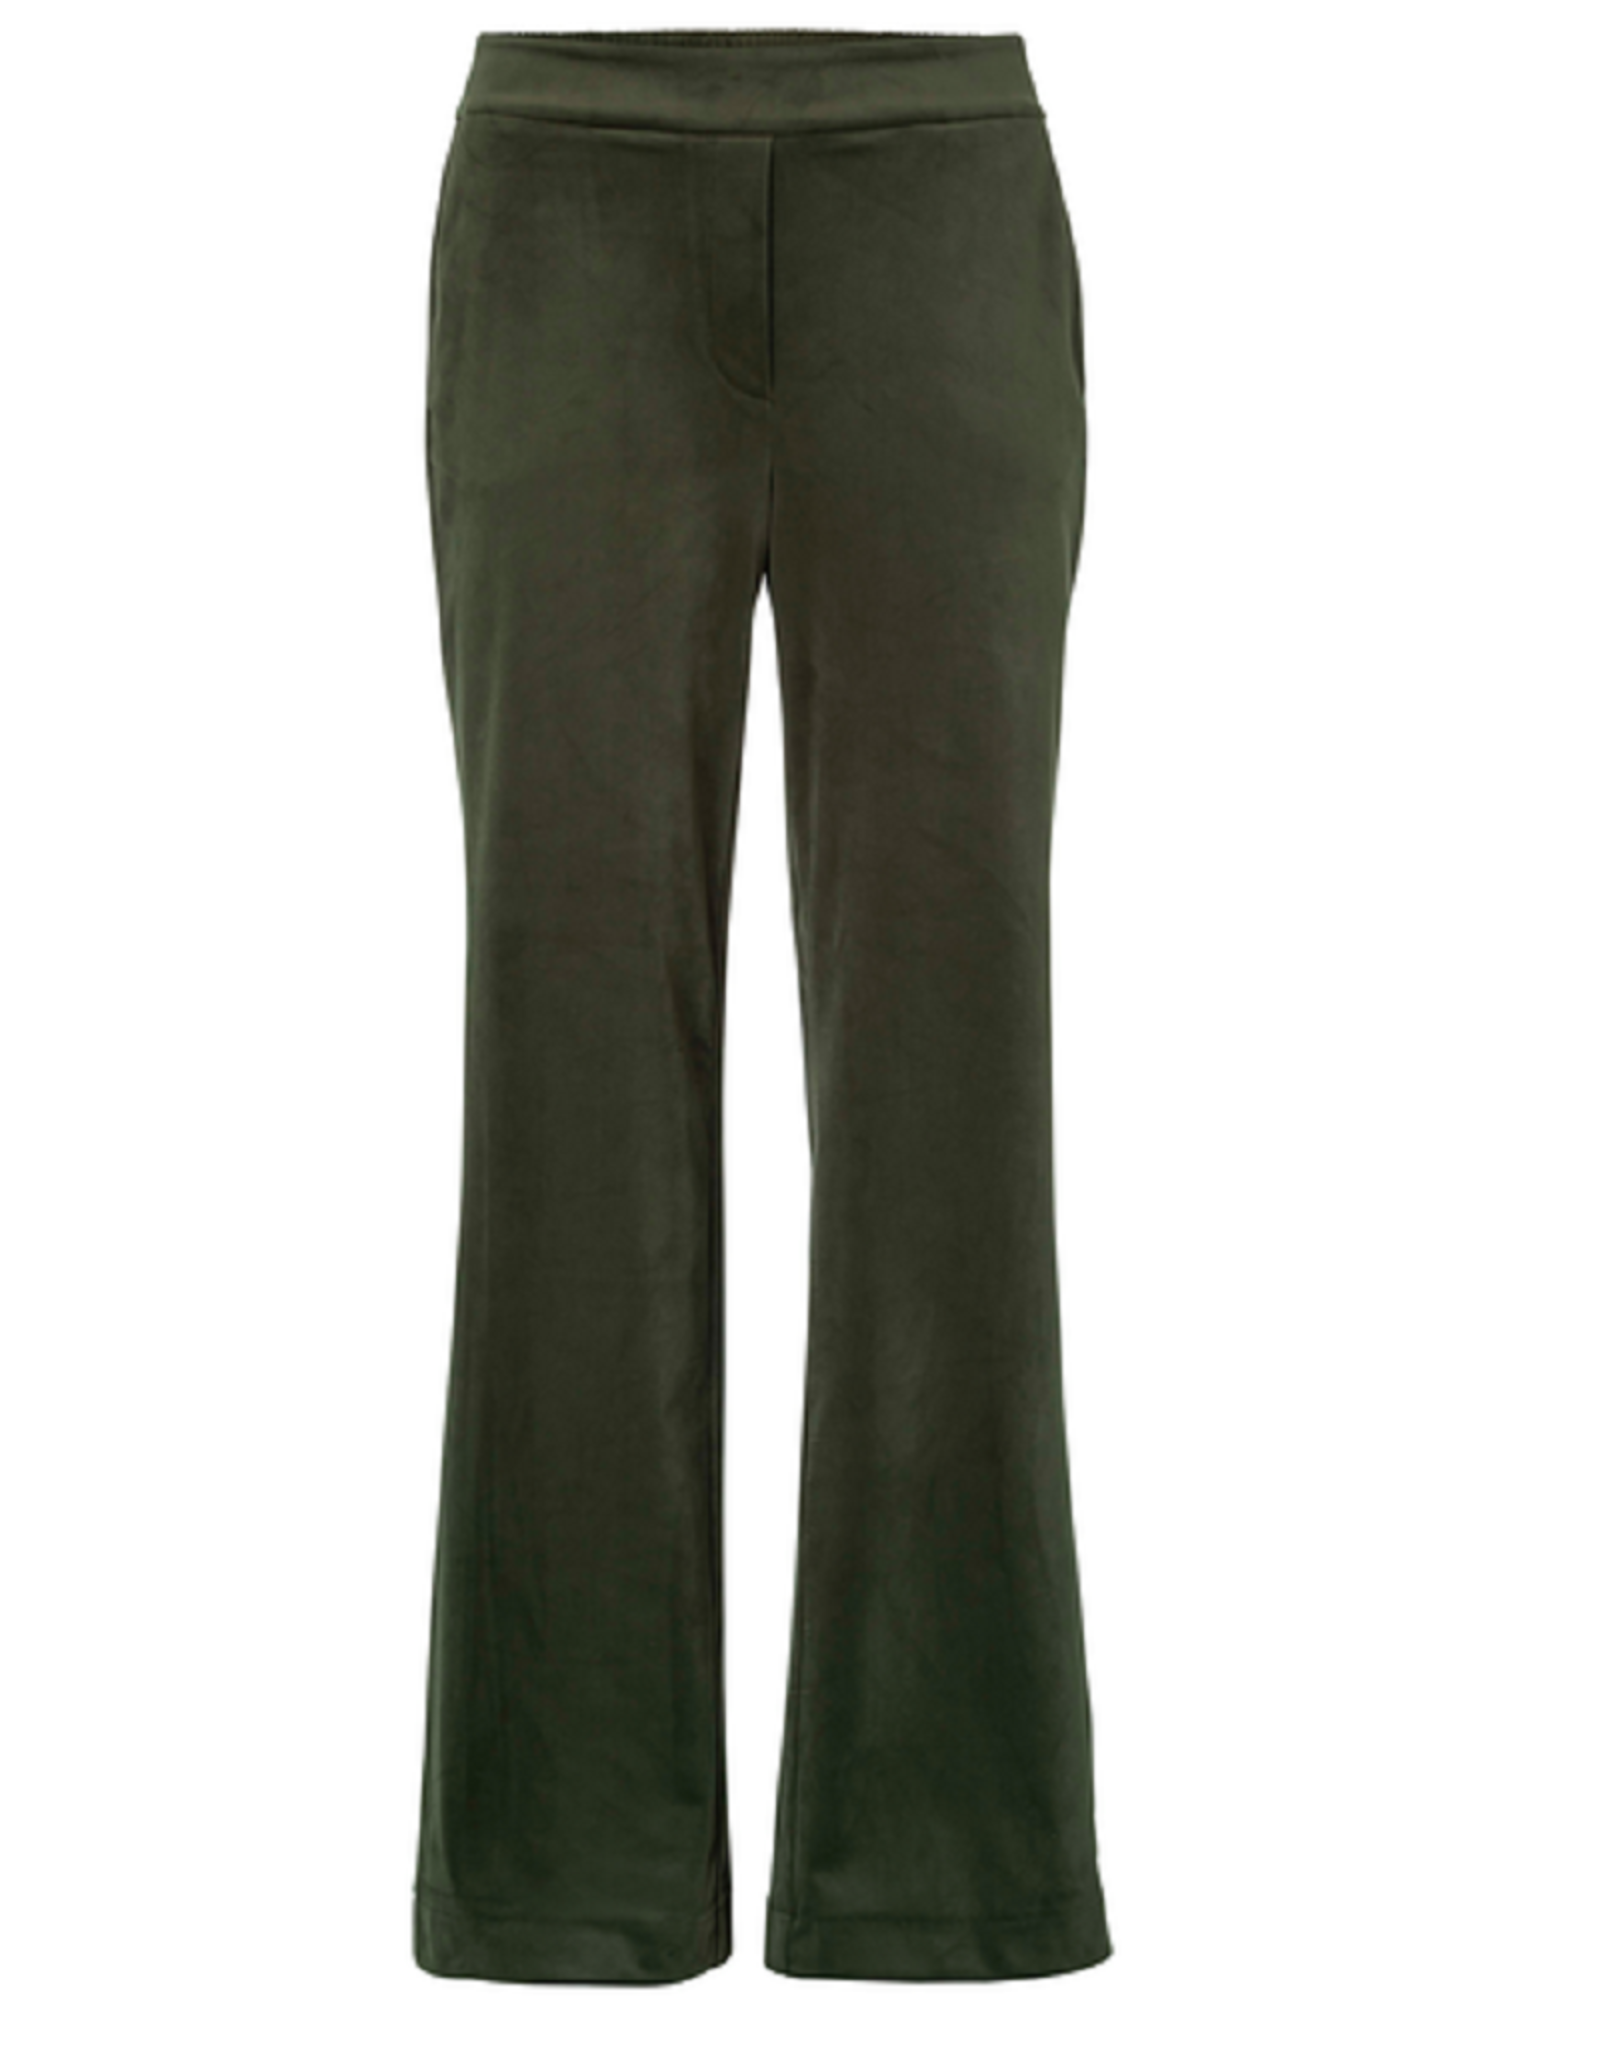 YAYA Yaya Velvet stretch relaxed trousers with wide leg - Deep dark woods groen